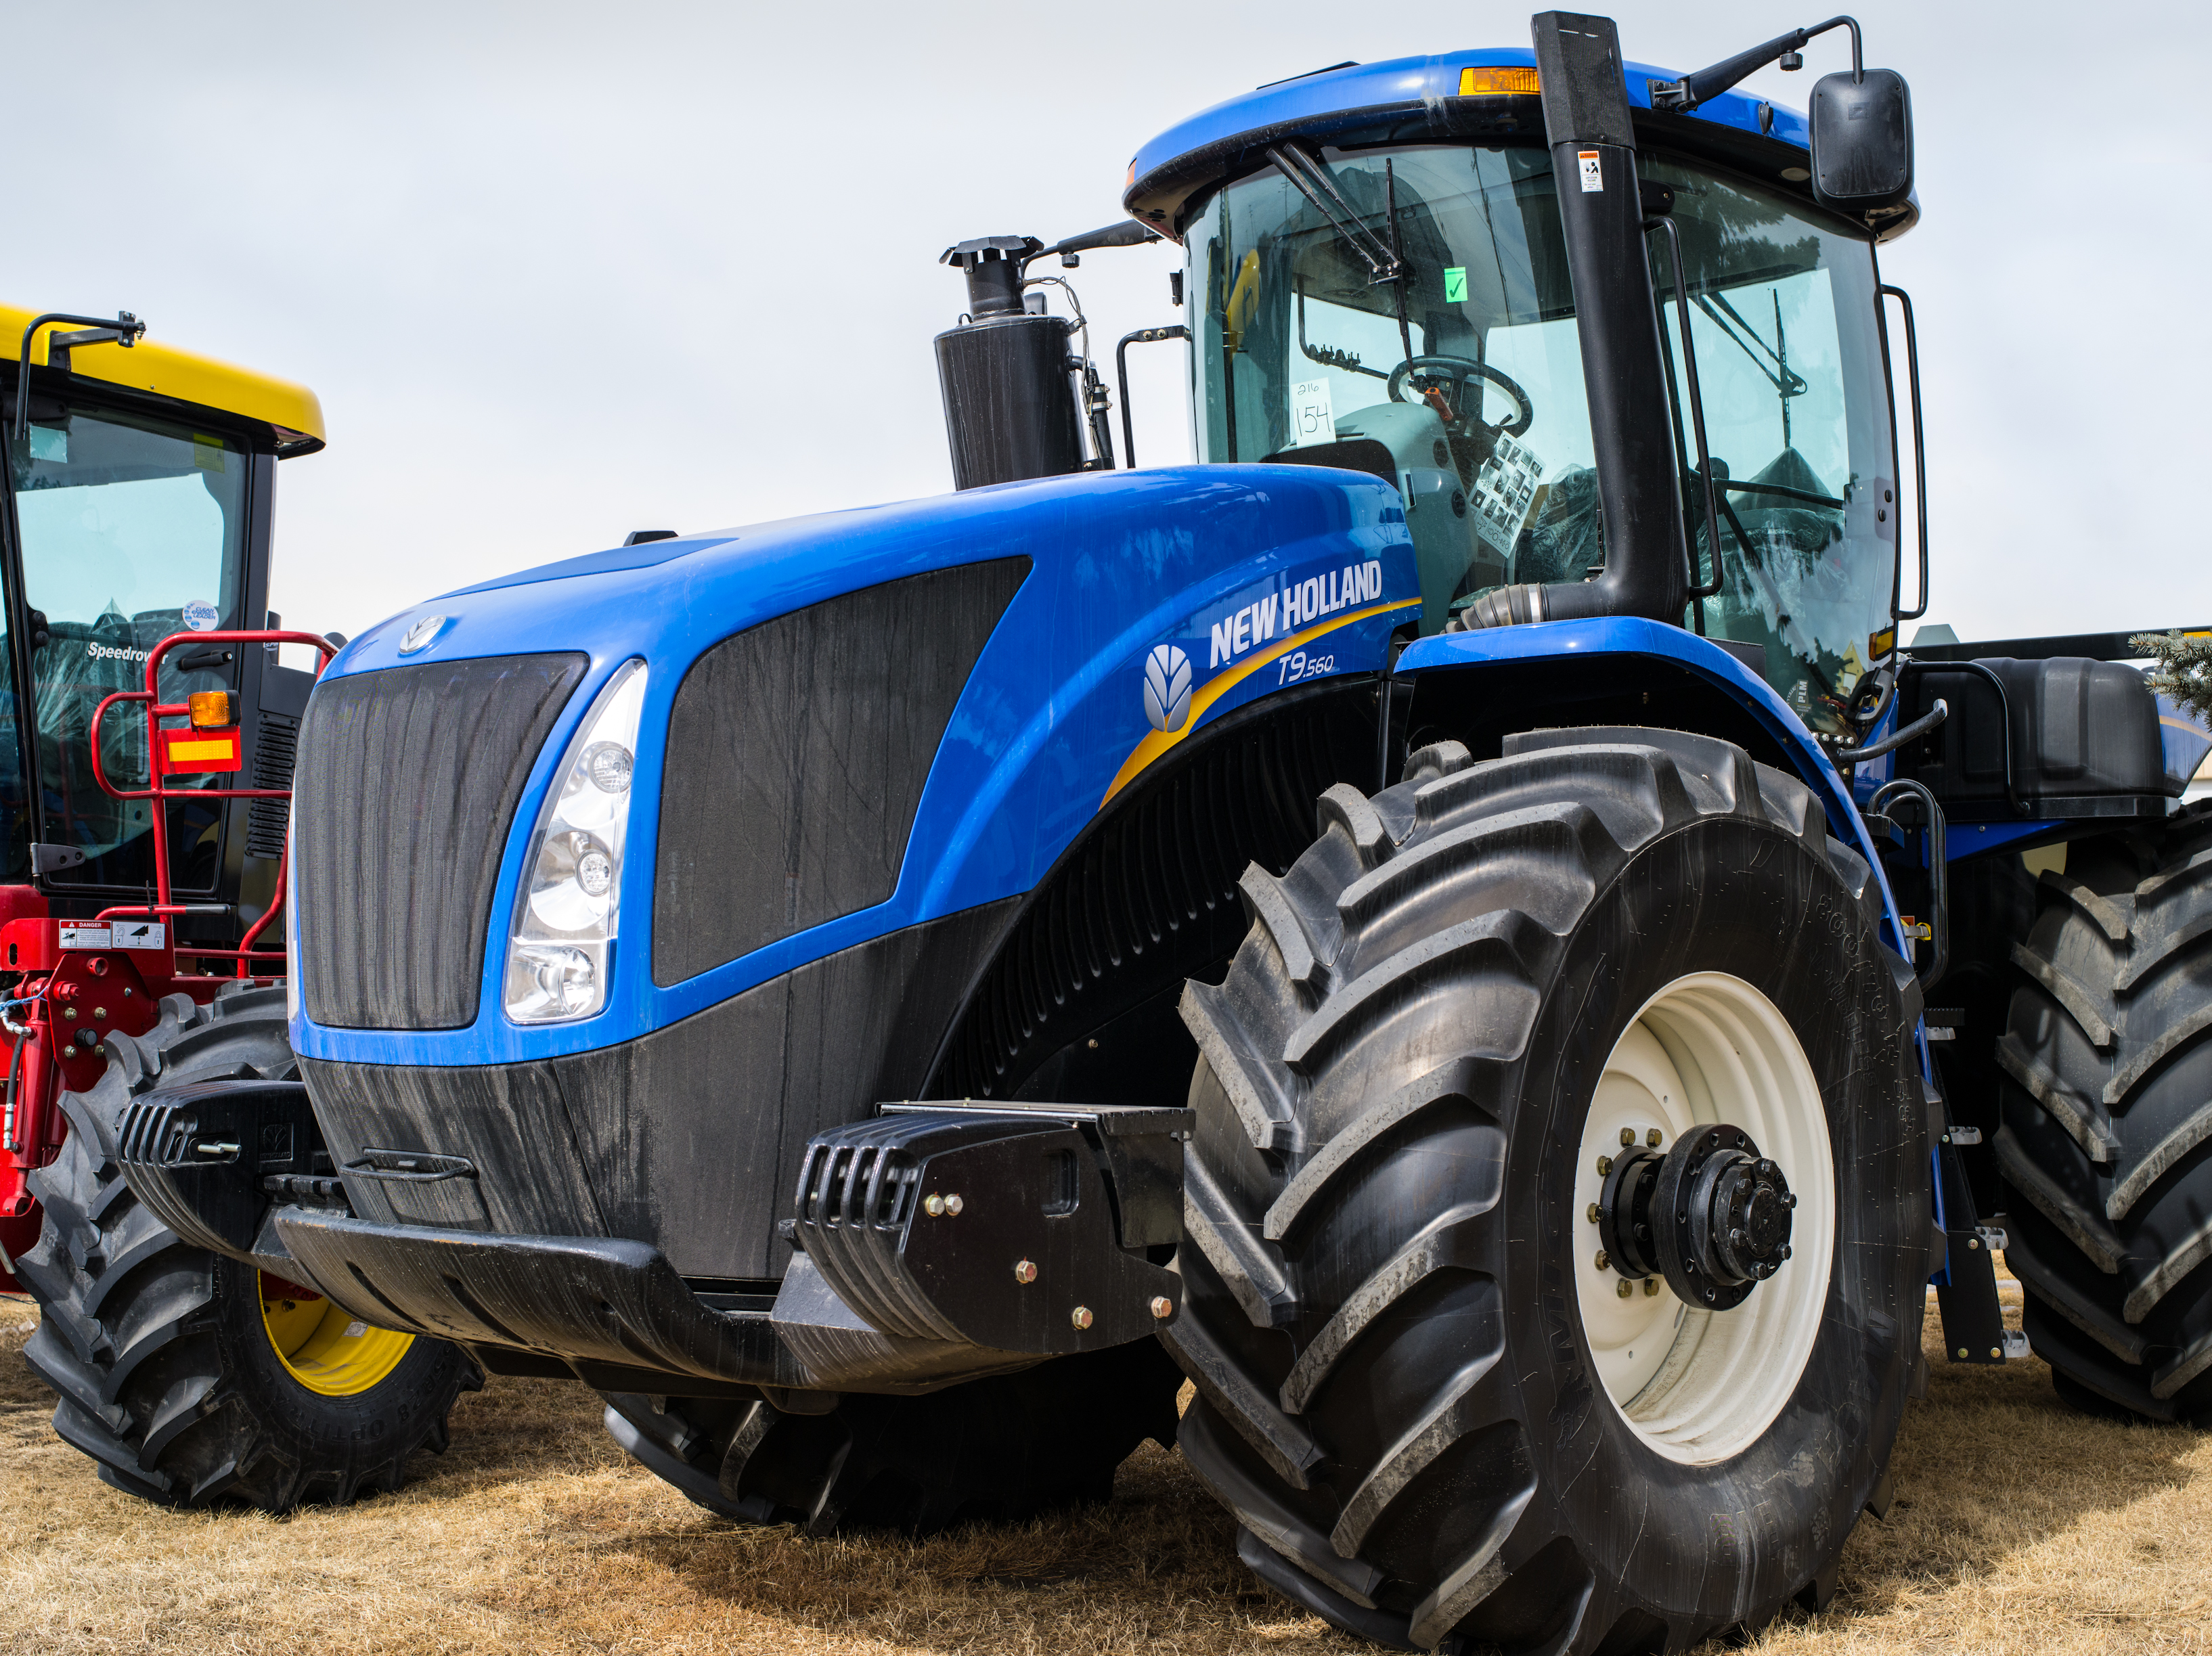 New Holland Tractor People : New holland blue tractor linden ab a portrait of